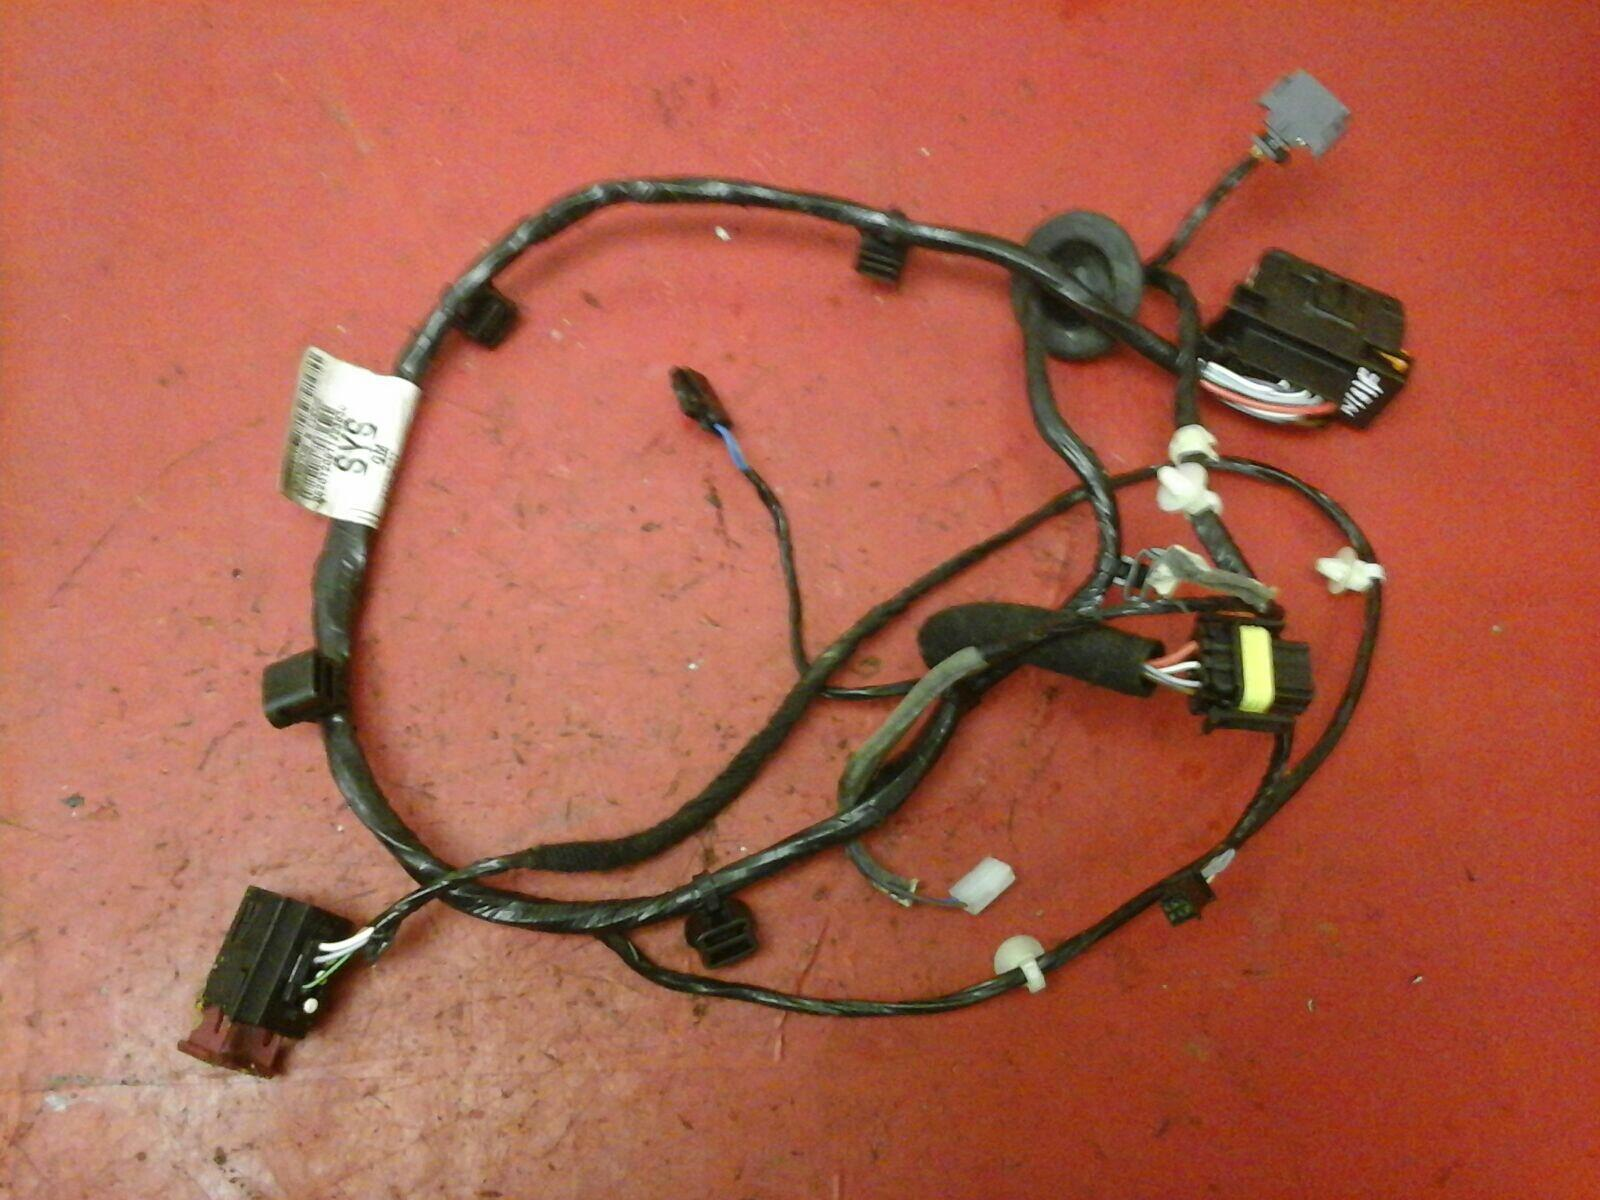 Vauxhall Zafira Wiring Loom Free Diagram For You Chevrolet B Passenger Side N S Front Door Harness Rh Southwestvauxhallspares Co Uk A Opel